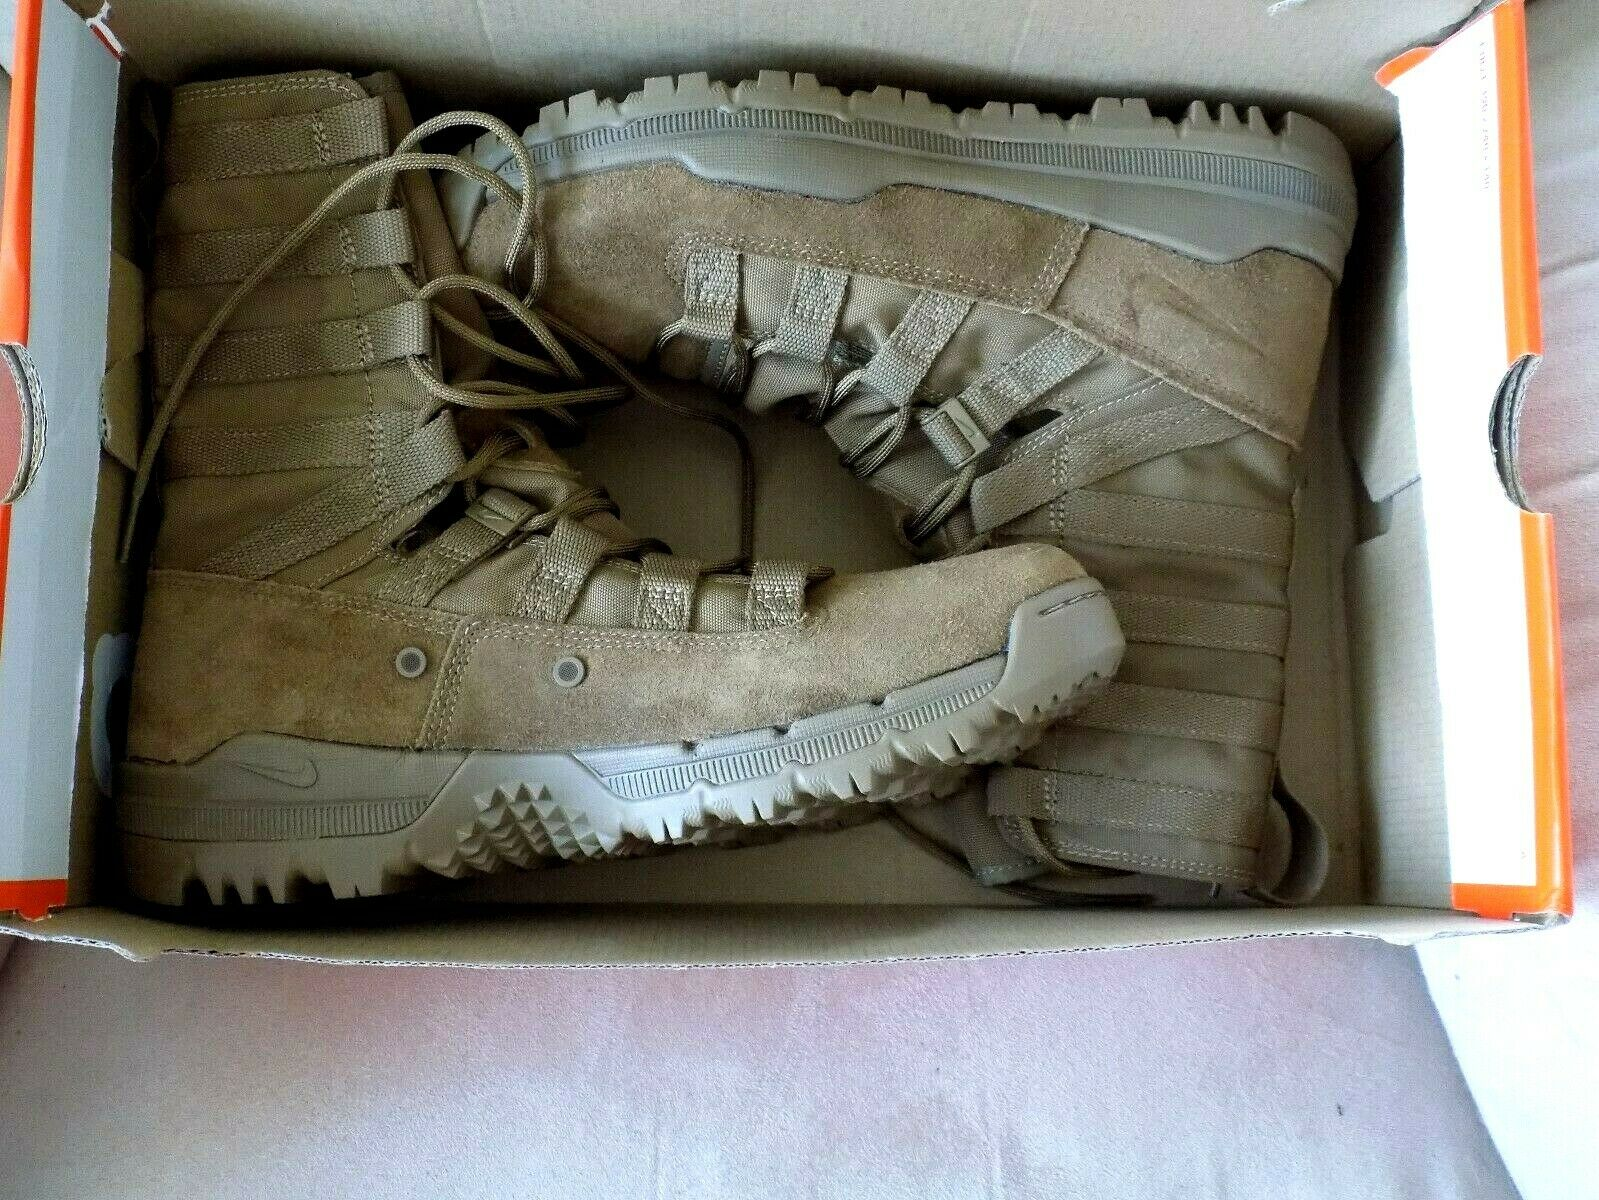 Nike Swoosh Just Do It Tan Brown Leather Men's Boots Boots Boots Size 10 New MSR  165 873247